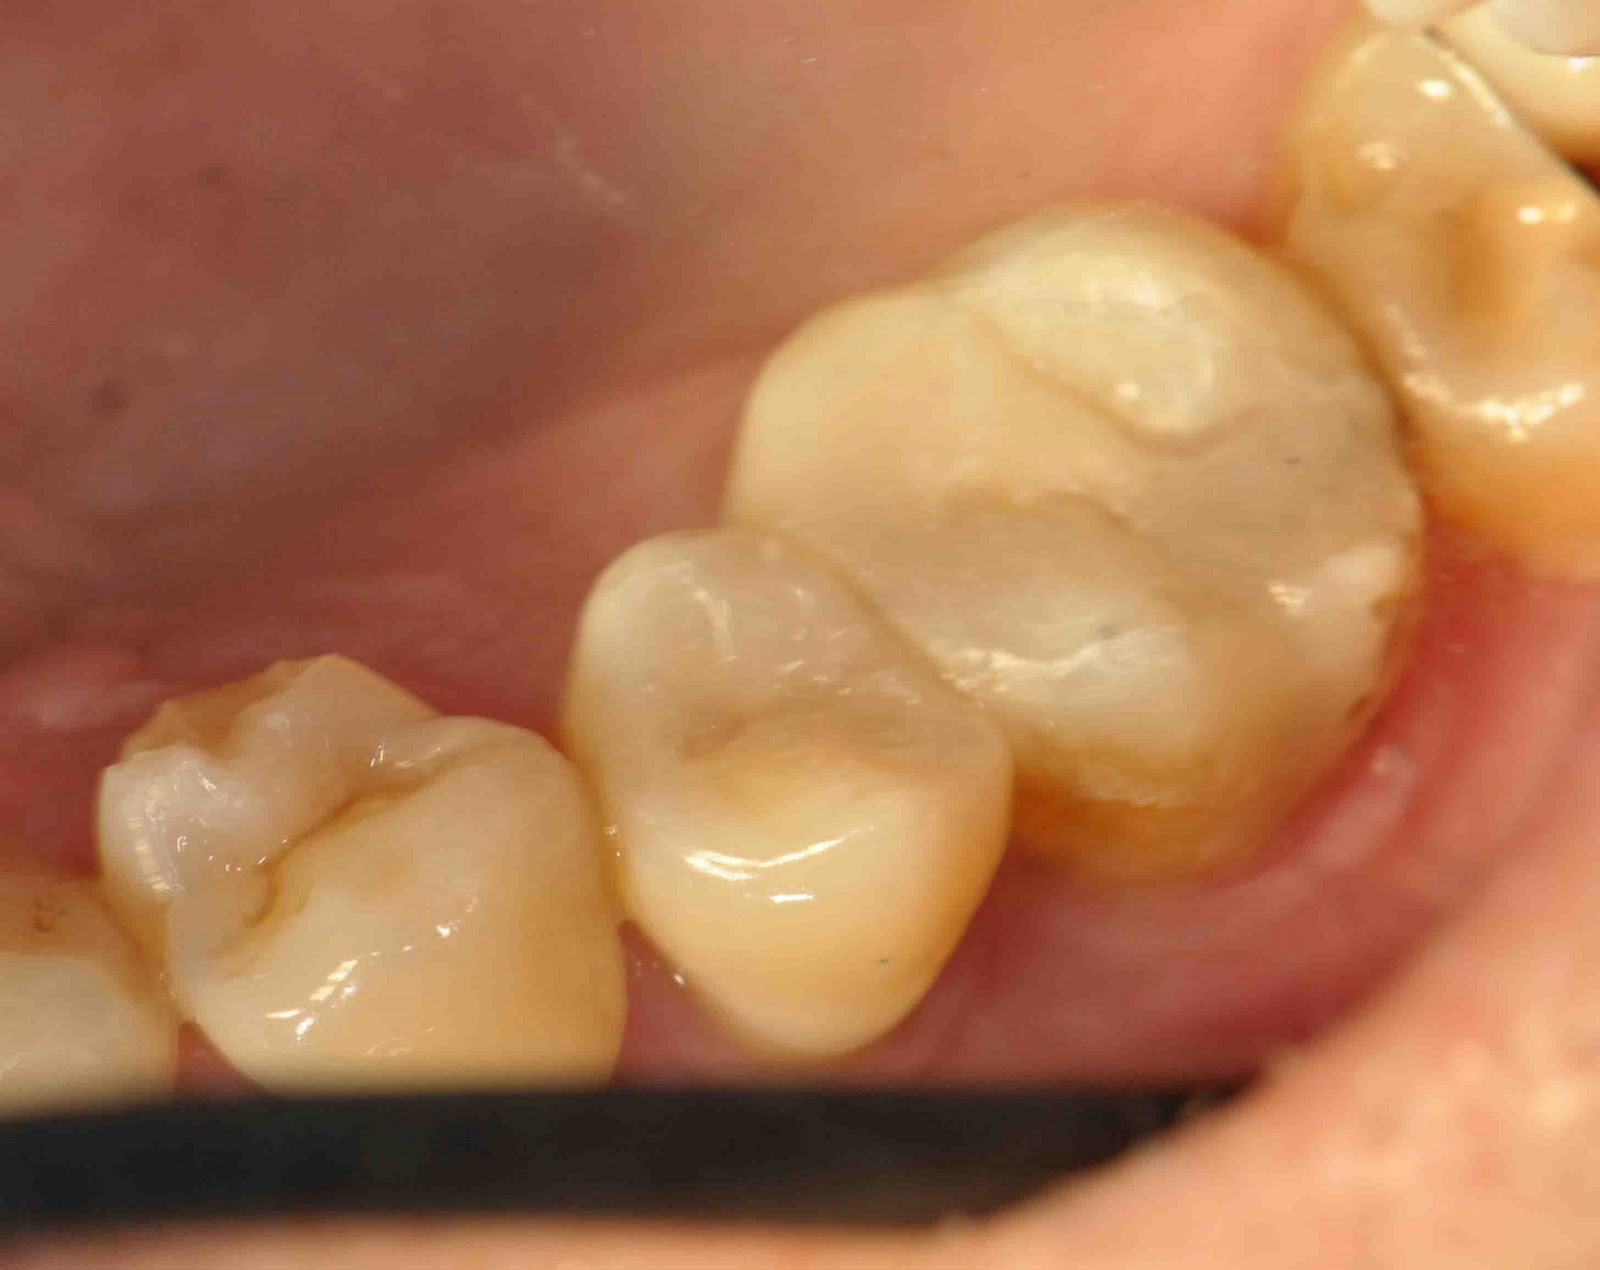 Treatment Options: Dental Aesthetic with White Filling II ...